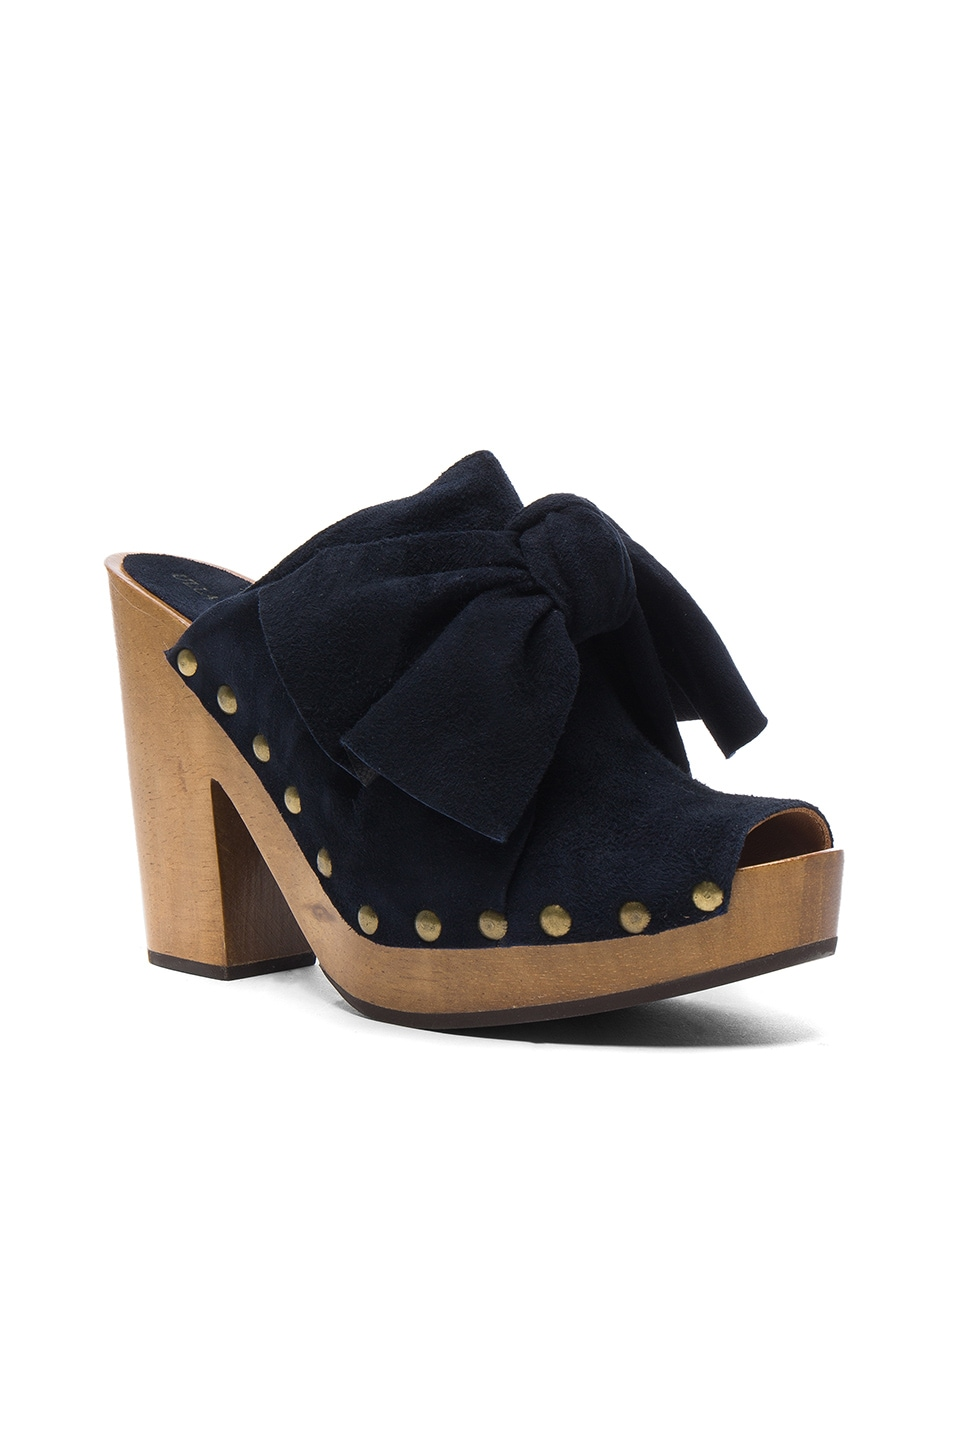 Image 2 of Ulla Johnson Suede Stevie Clogs in Midnight Suede